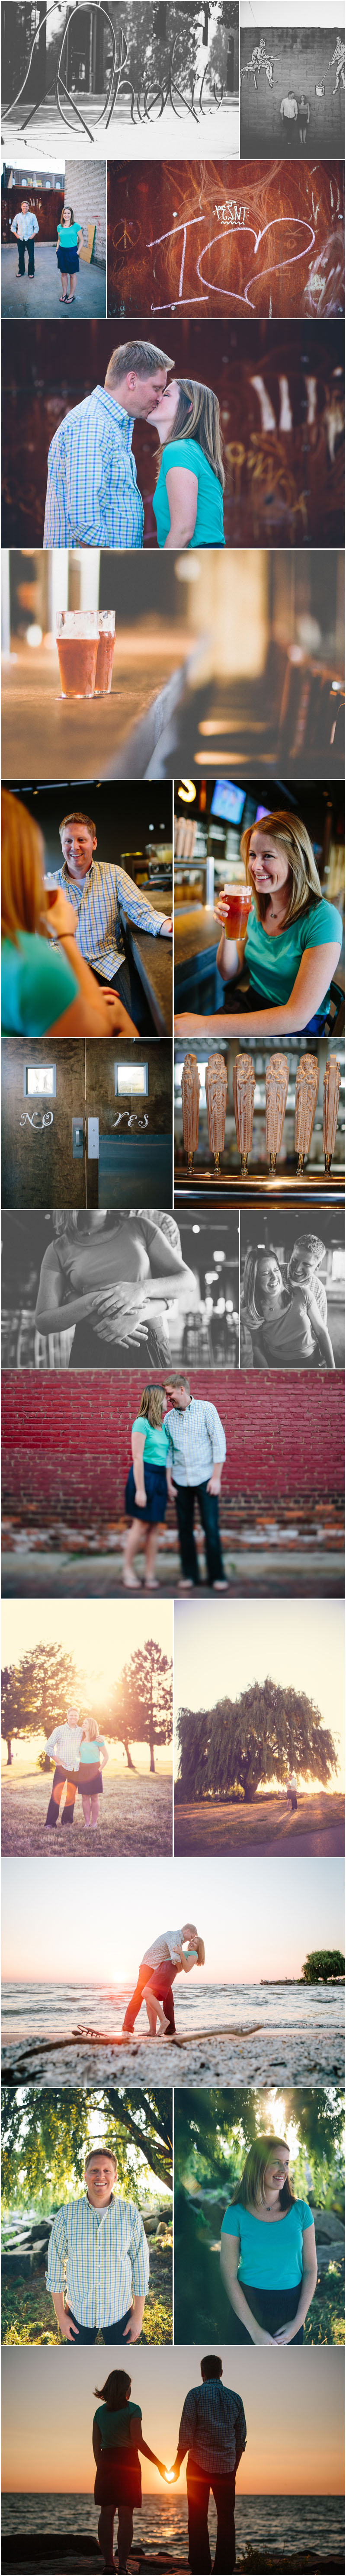 cleveland wedding and engagement photographer www.toomuchawesomeness.com